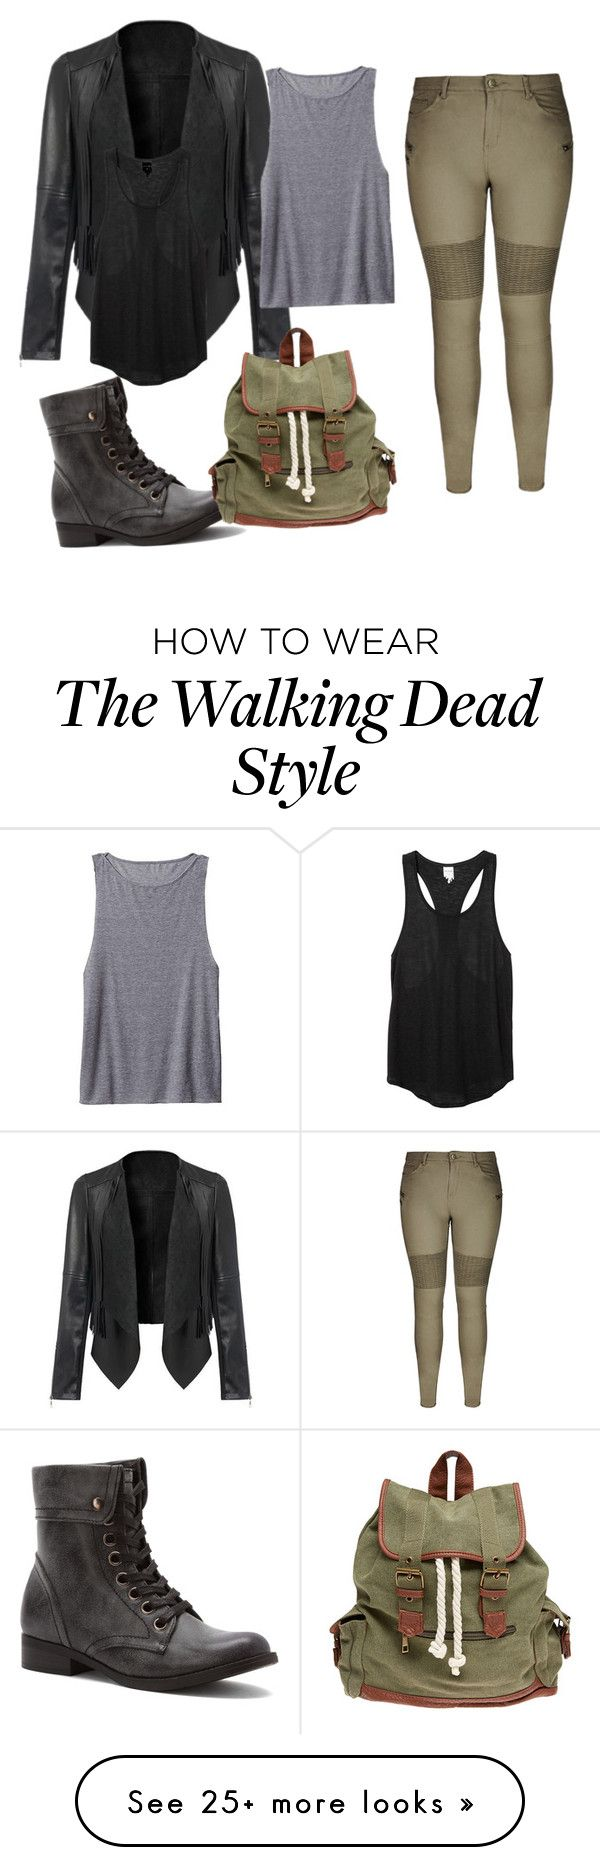 """Walking dead inspired"" by rachaelthompson on Polyvore featuring 2 Lips Too, City Chic, Wet Seal, Athleta and Monki"